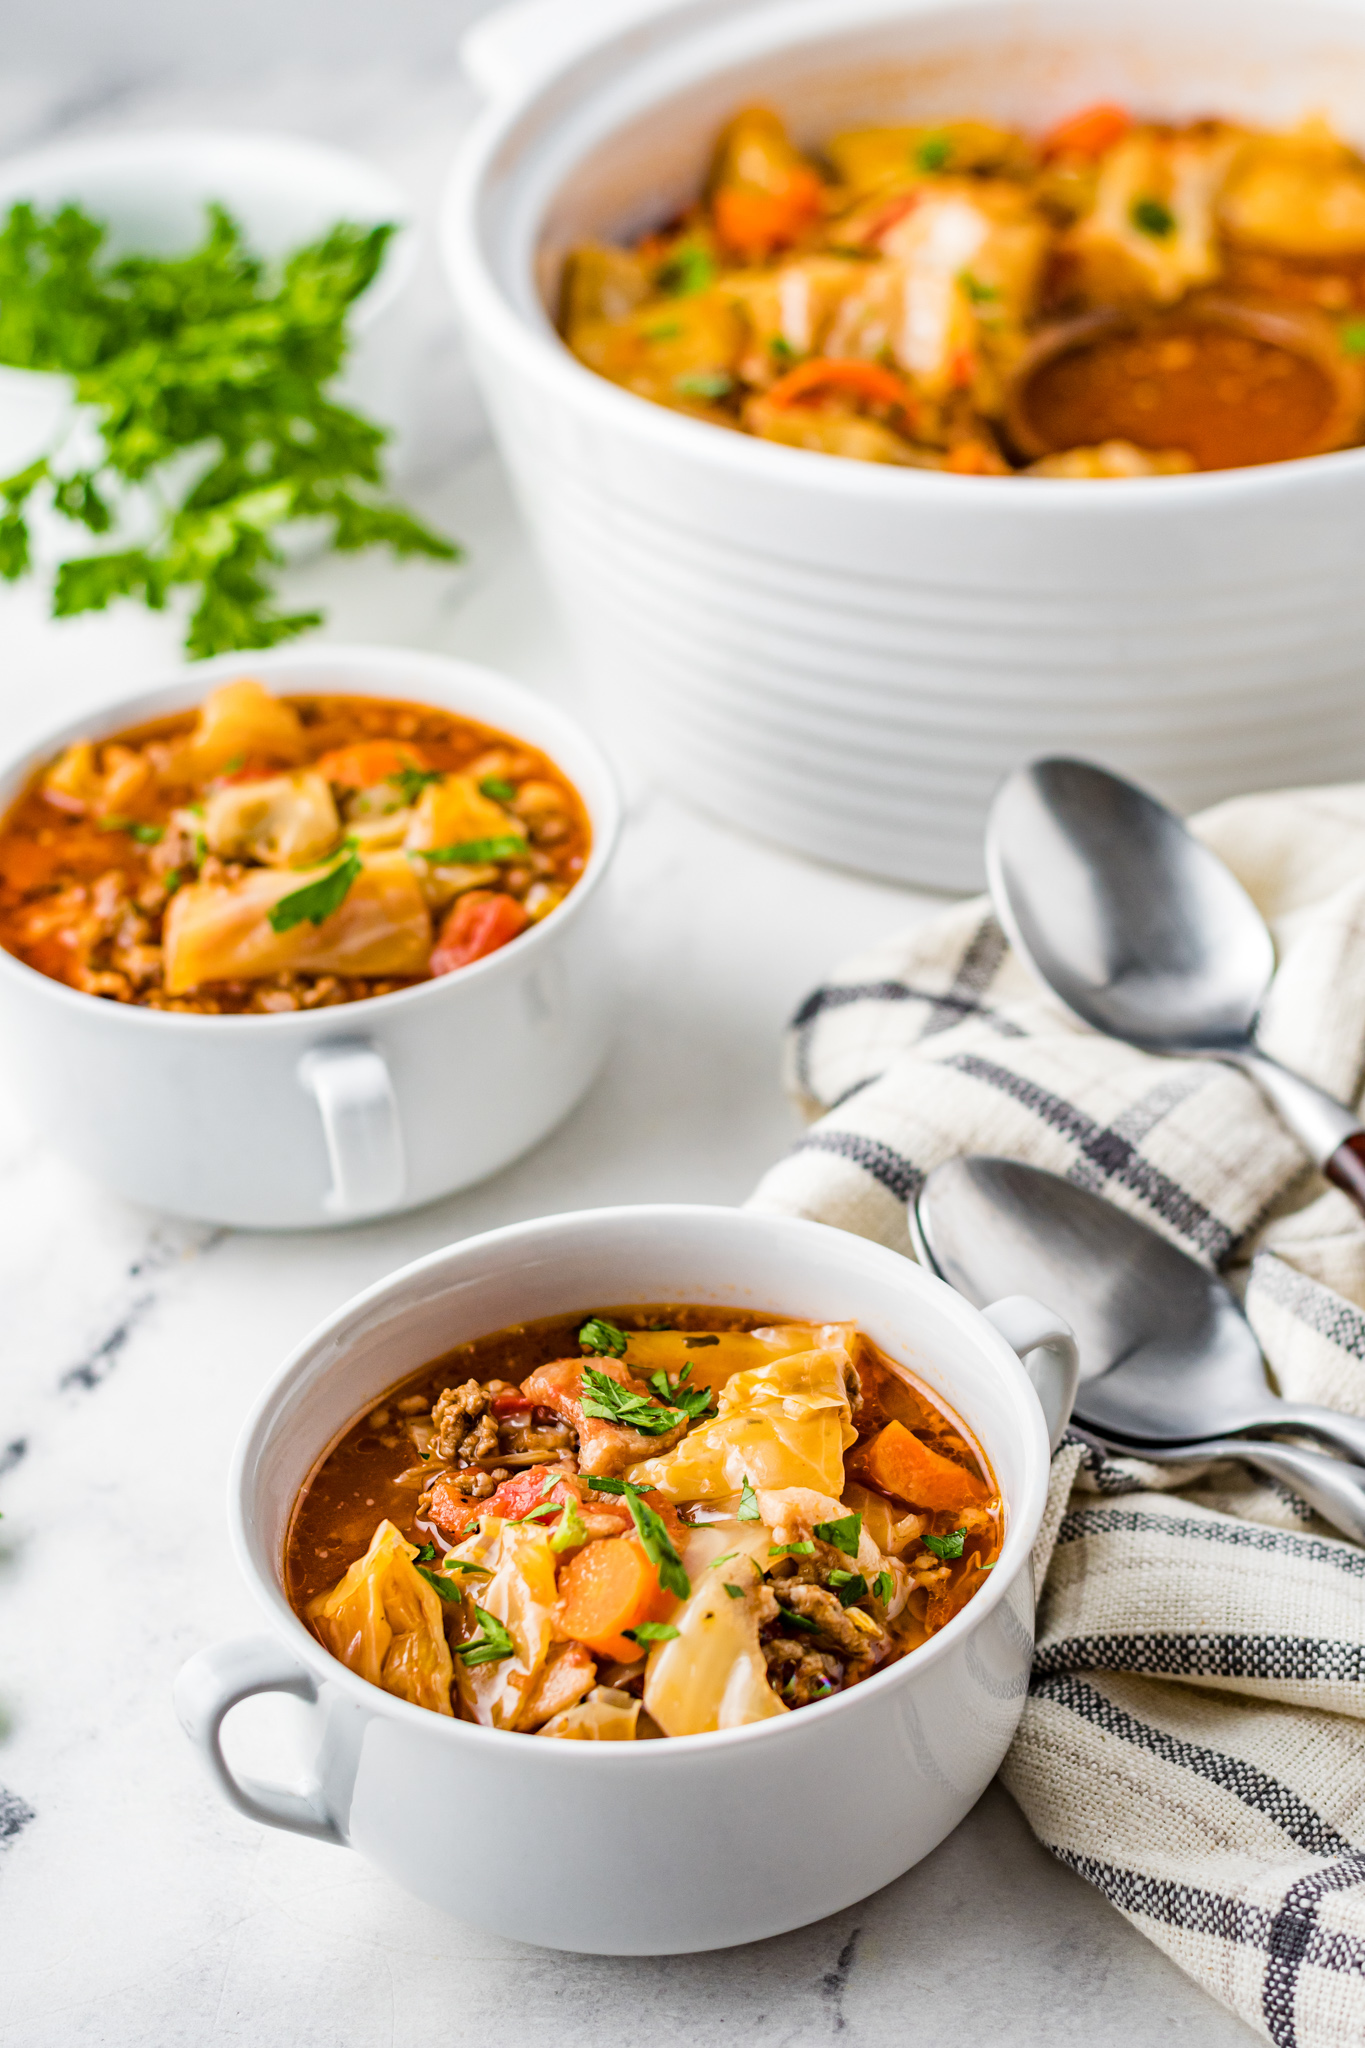 Cabbage Roll Soup in small white bowls.